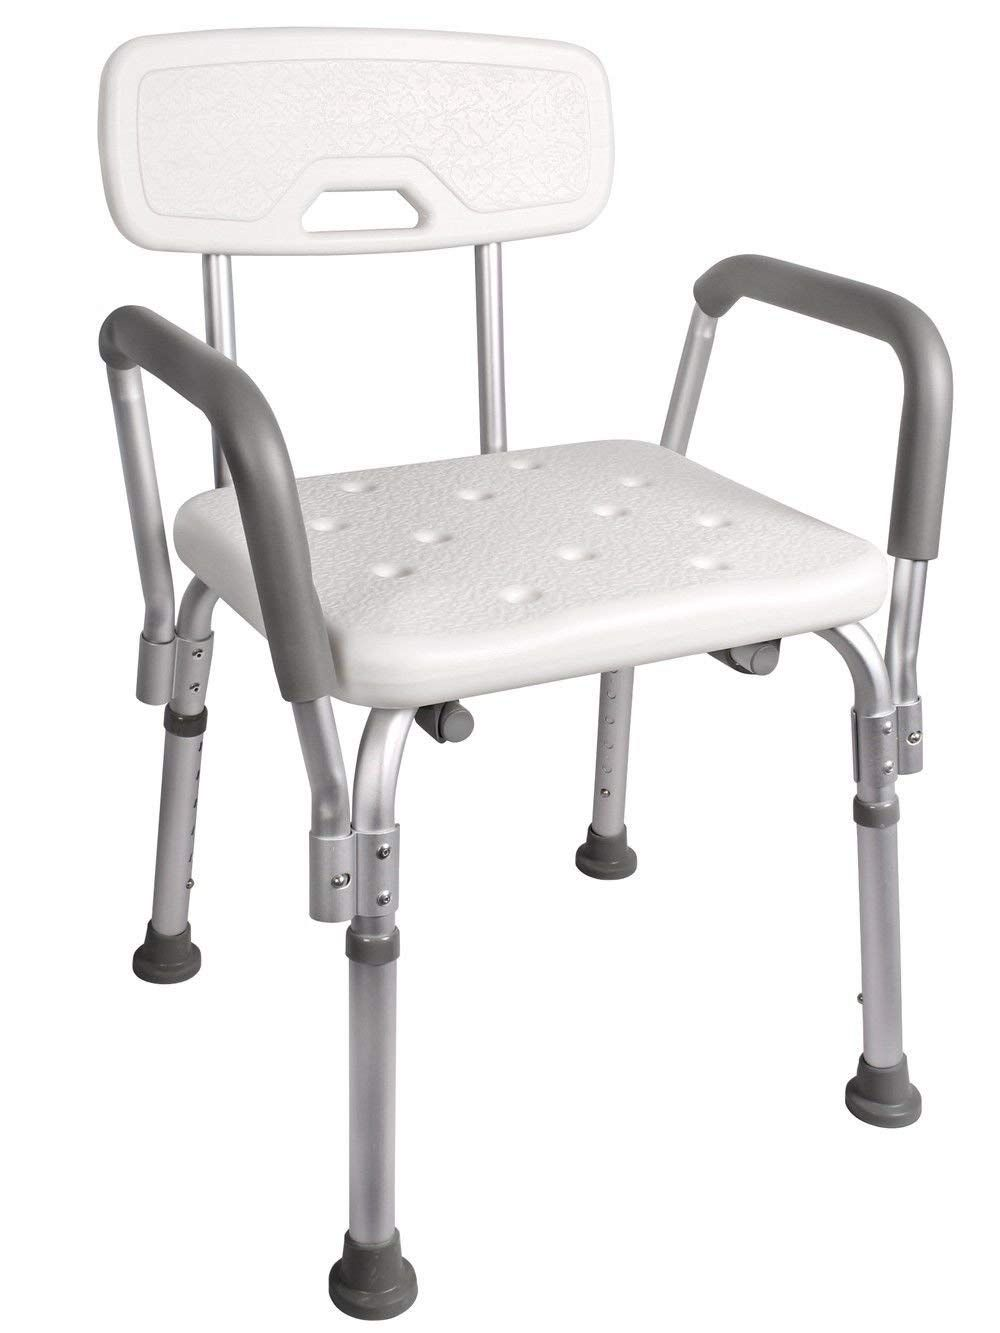 Bath Chair For Elderly Stuhlede Com Bath Chair For Elderly Shower Chair Bathtub Bench